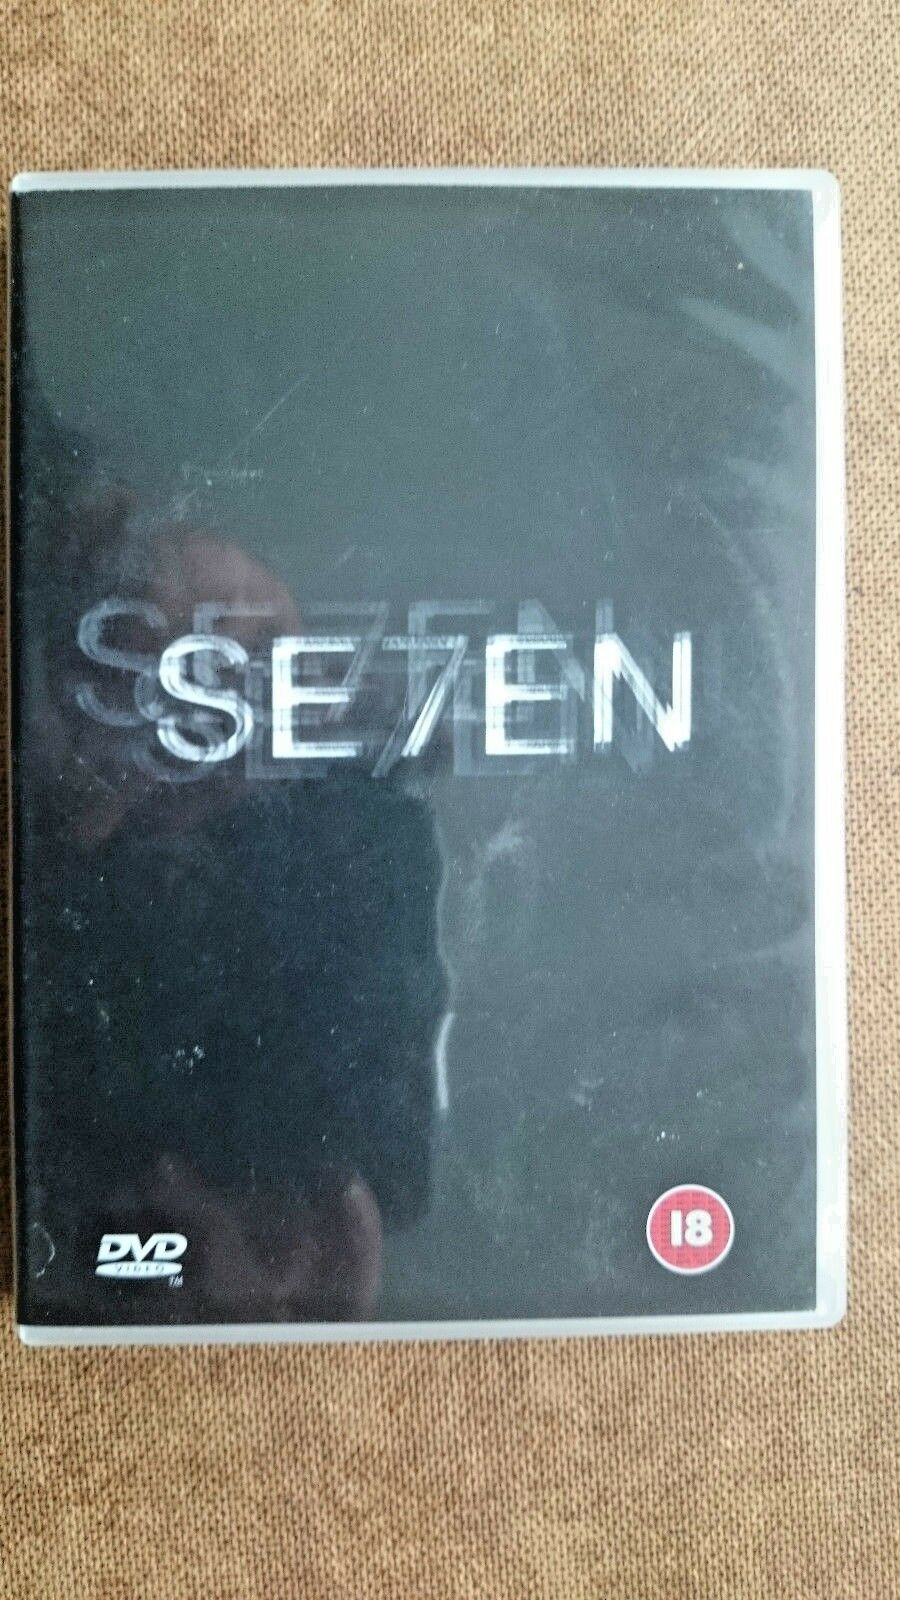 Seven (DVD, 2001, 2-Disc Set)